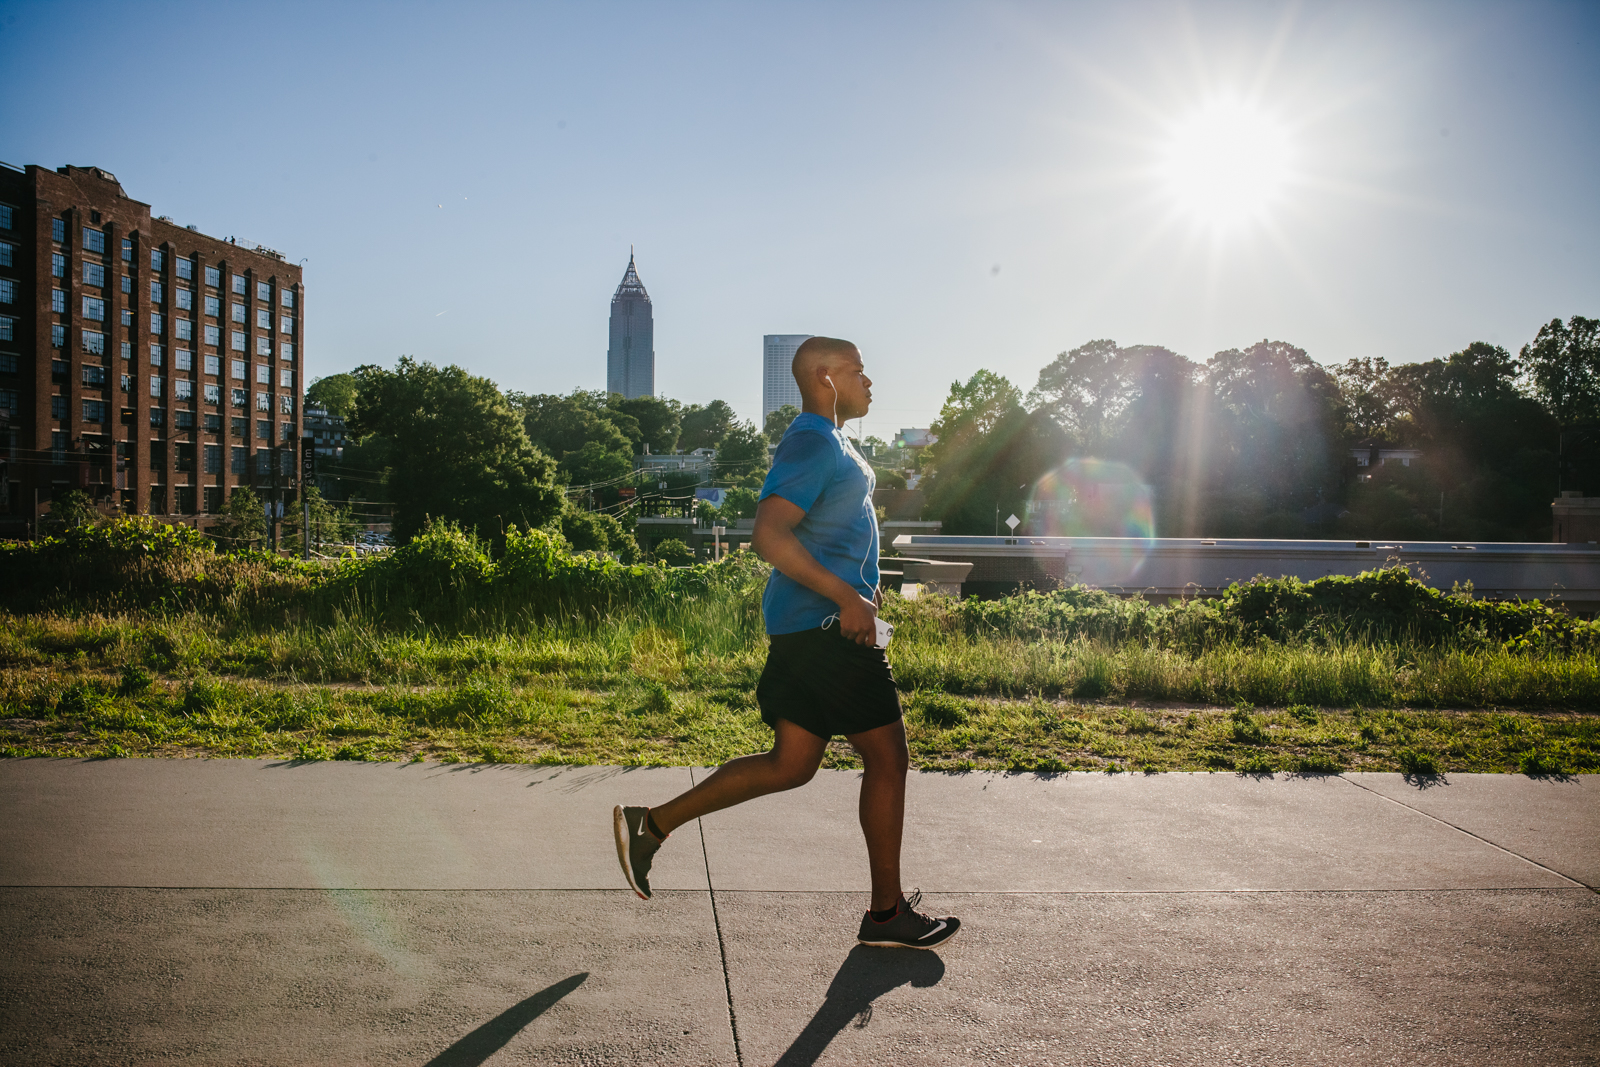 street photography image of runner on beltline from atlanta clickin walk 2017